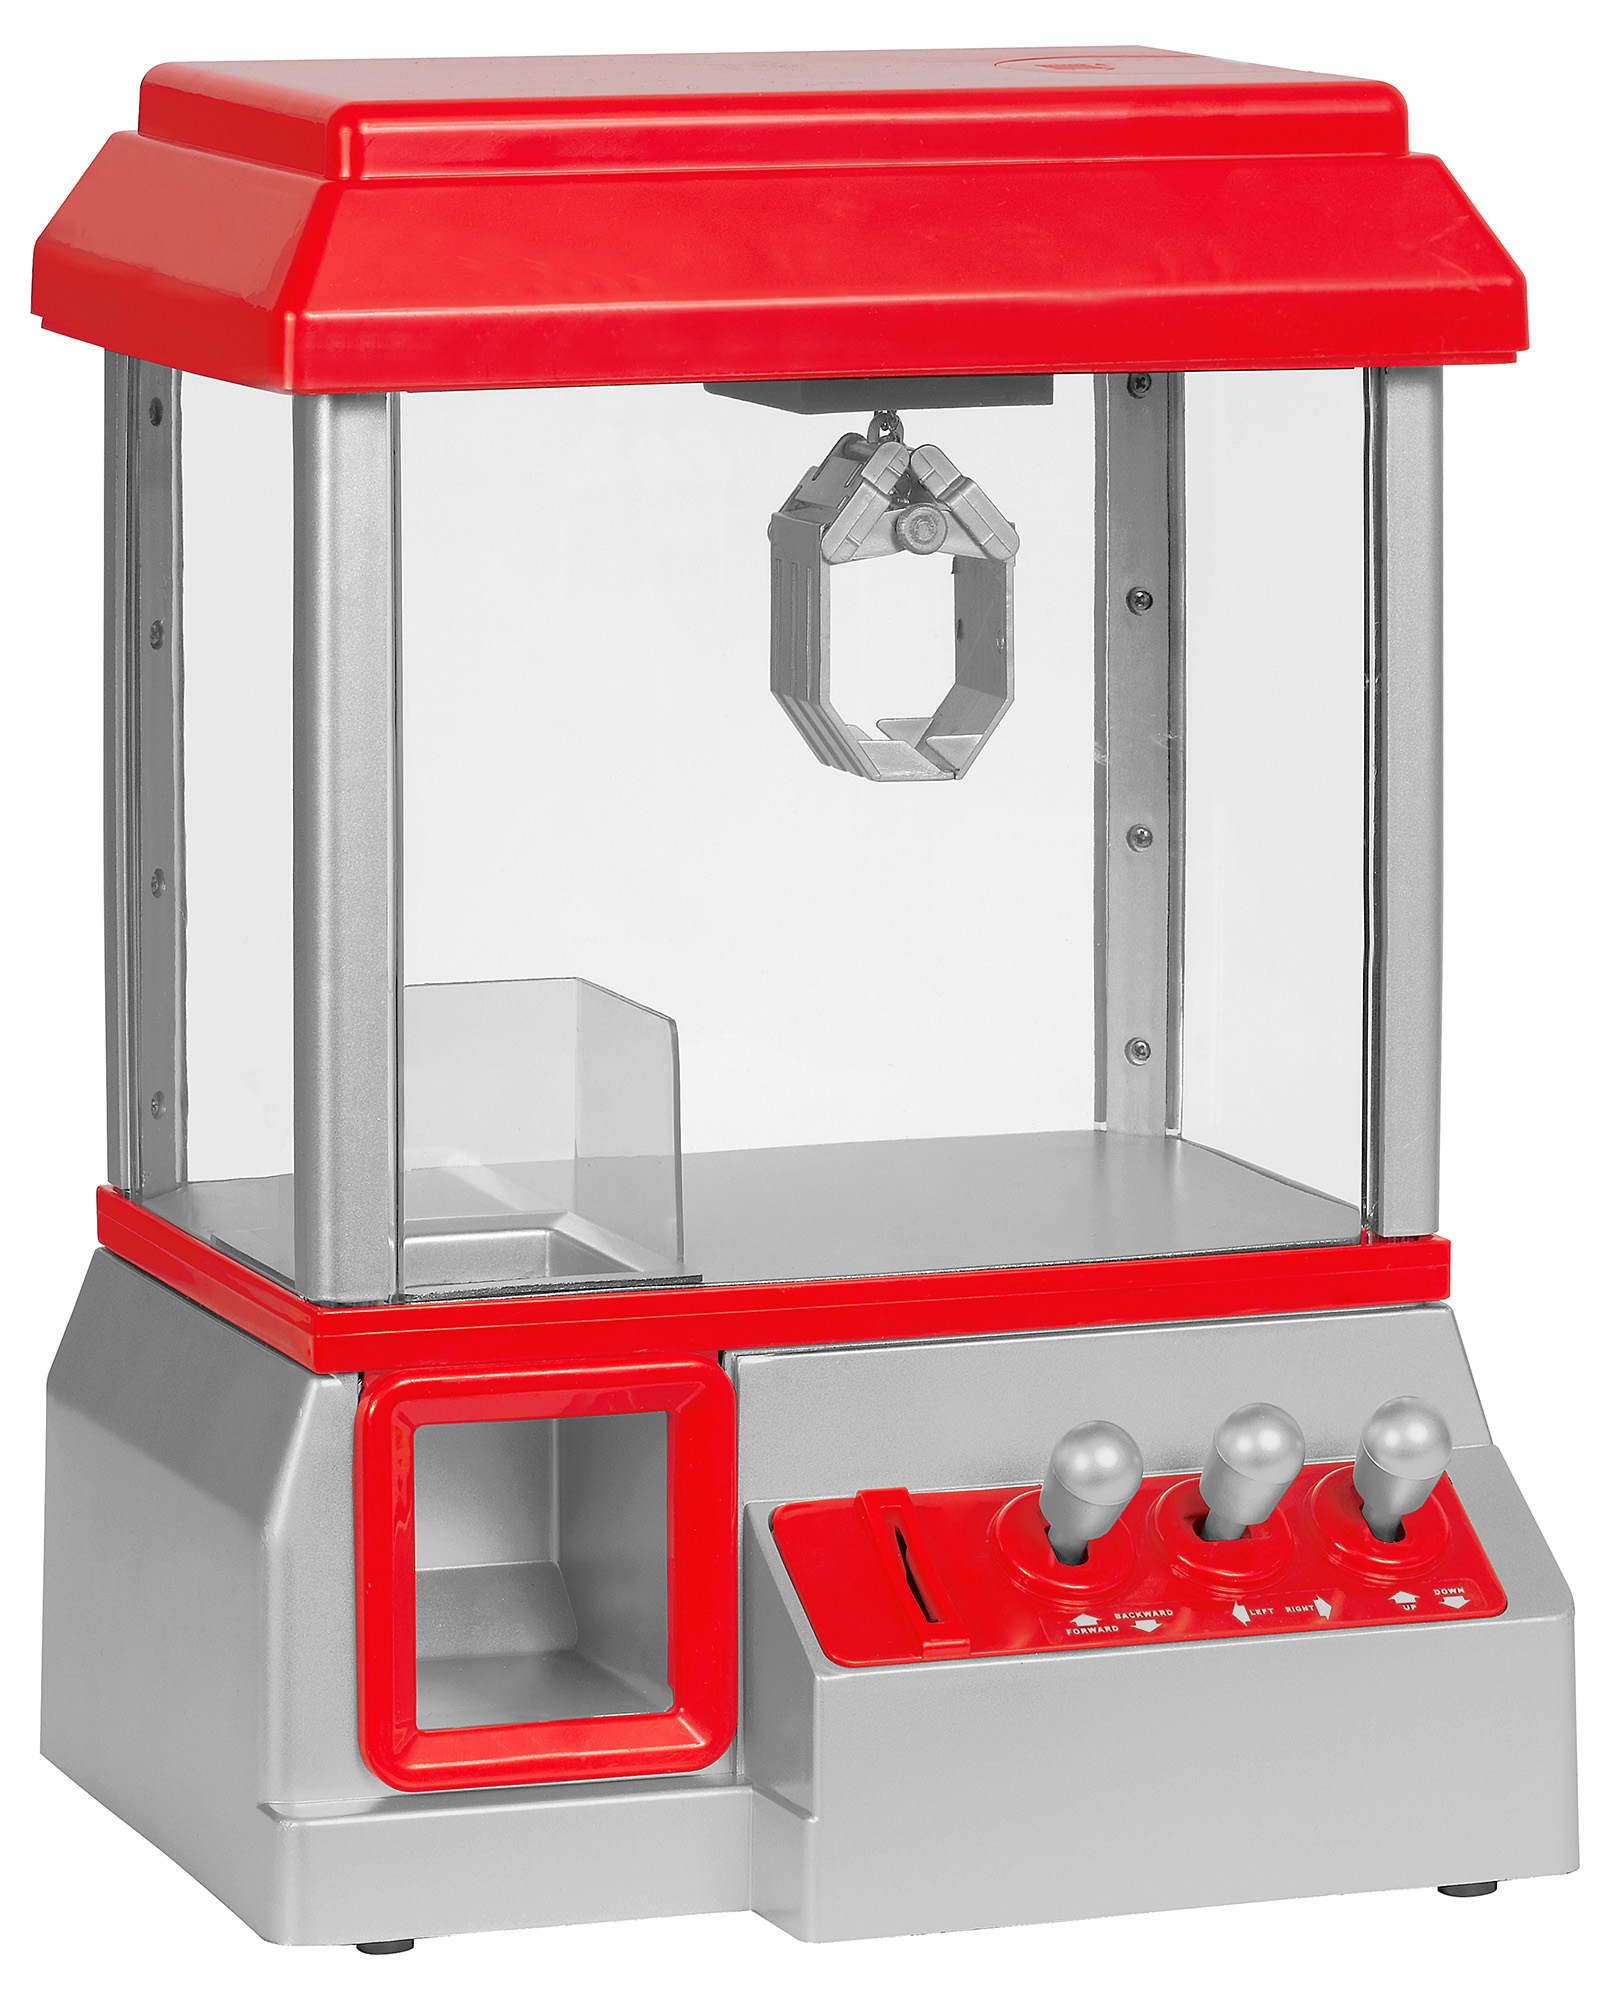 B/O candy grabber with music, candy machine, candy toy